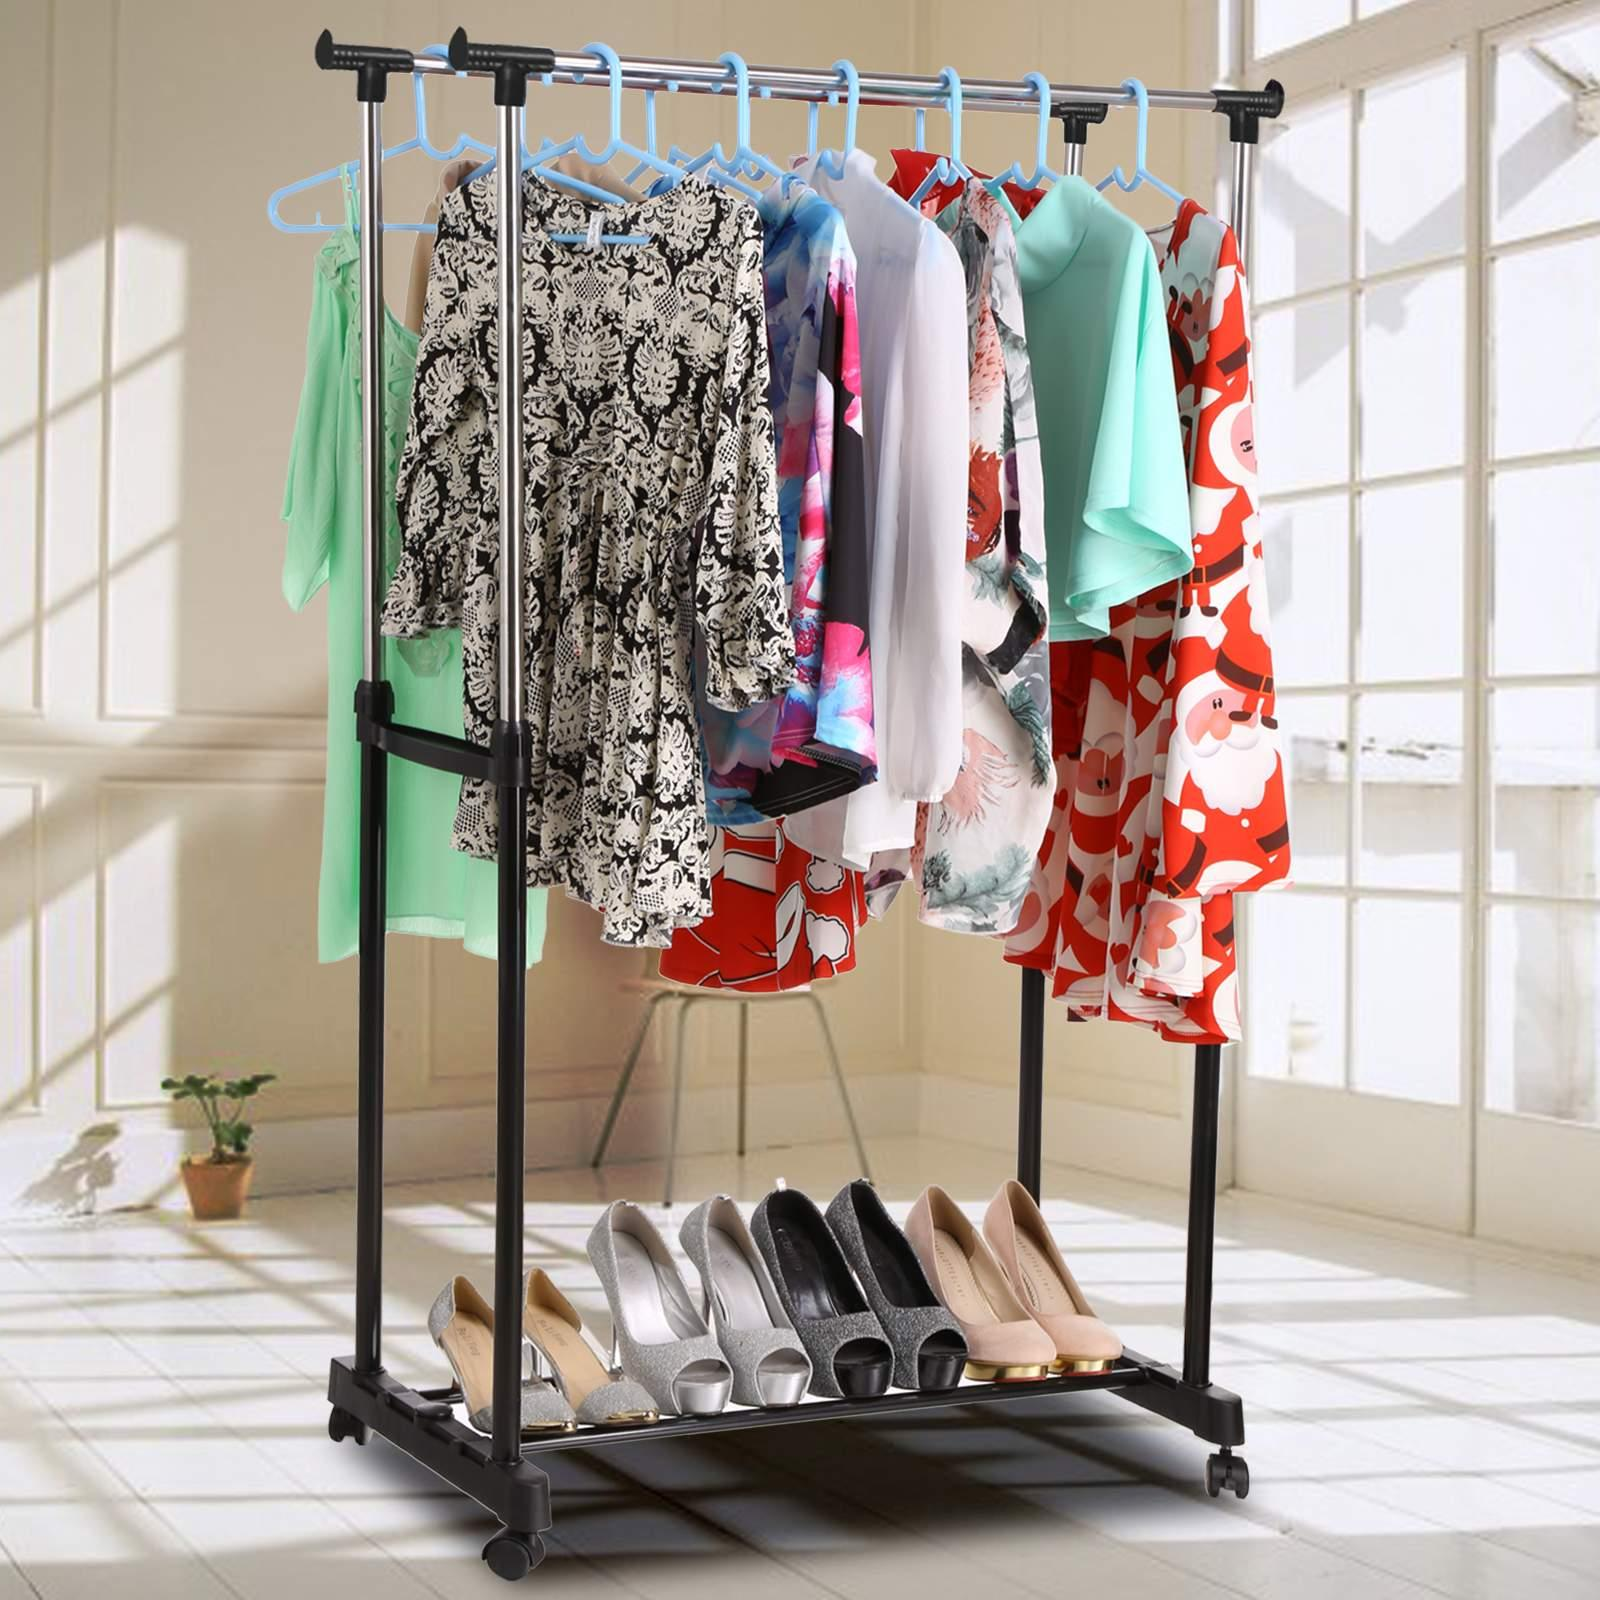 Clearance&Sale! Double Rail Garment Rack Adjustable Rolling Clothes Drying Rack Laundry Hanger